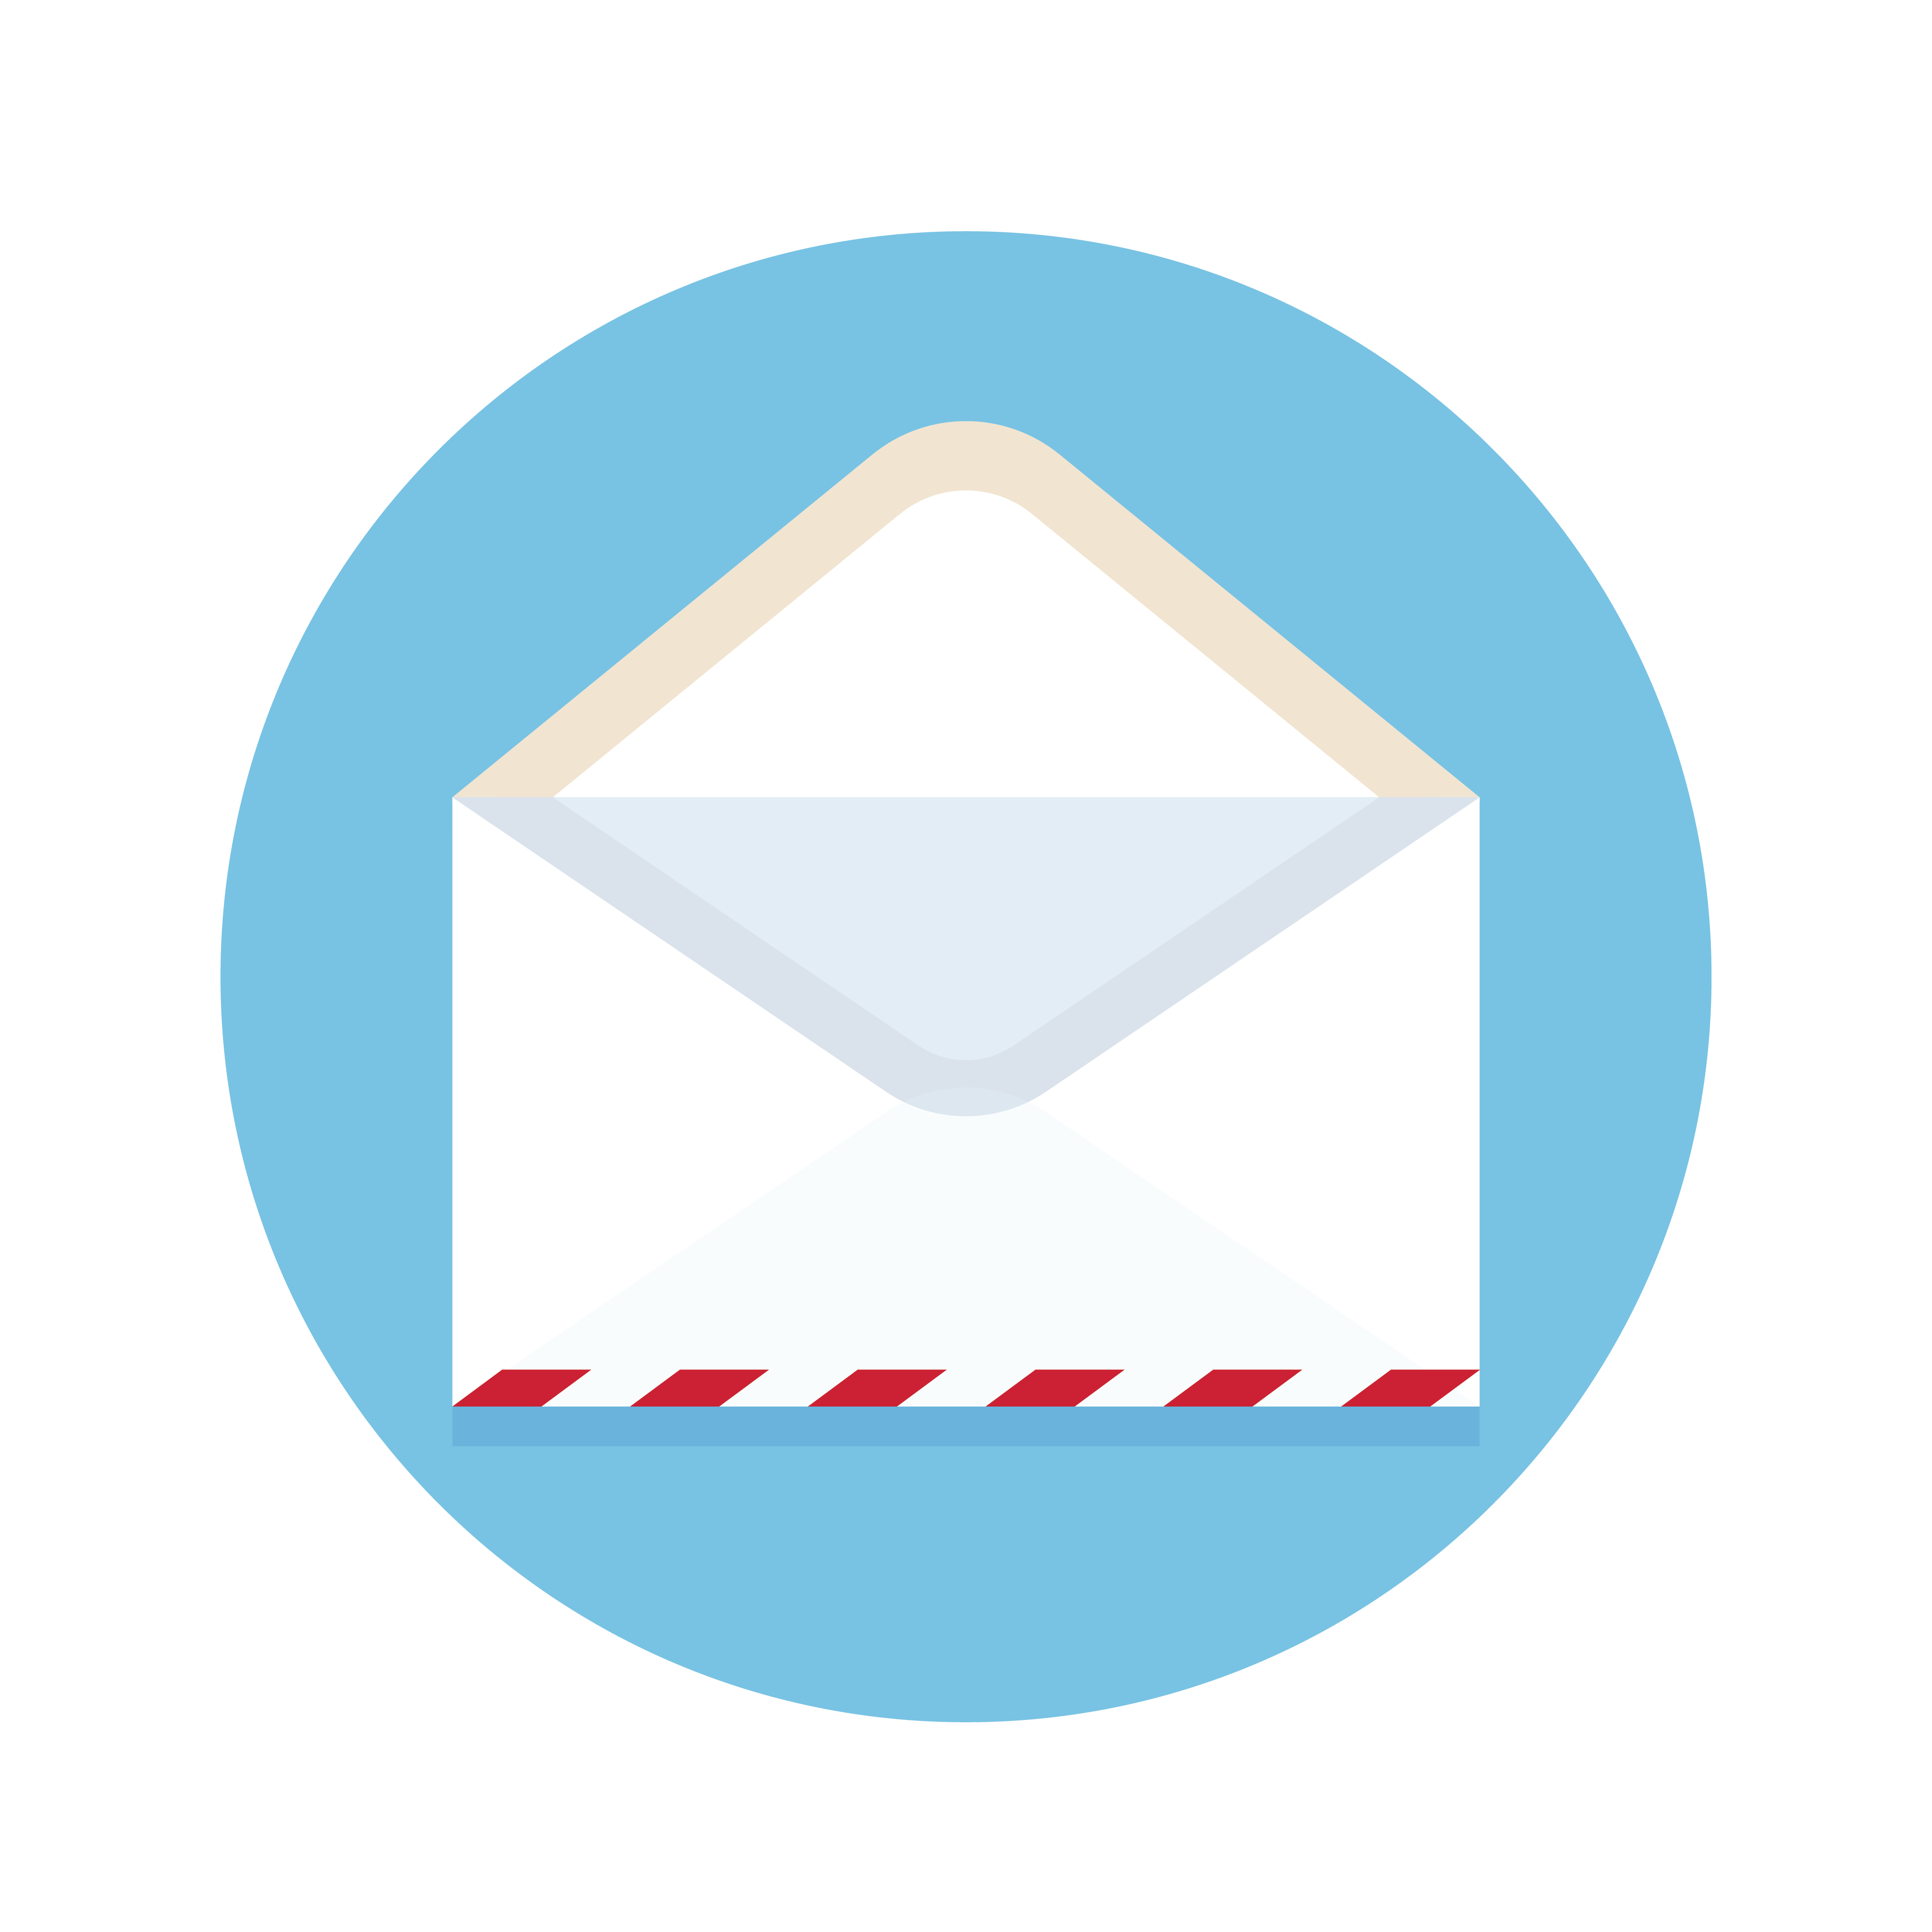 Icon of open new mail envelope. White envelope on a blue background. Vector illustration